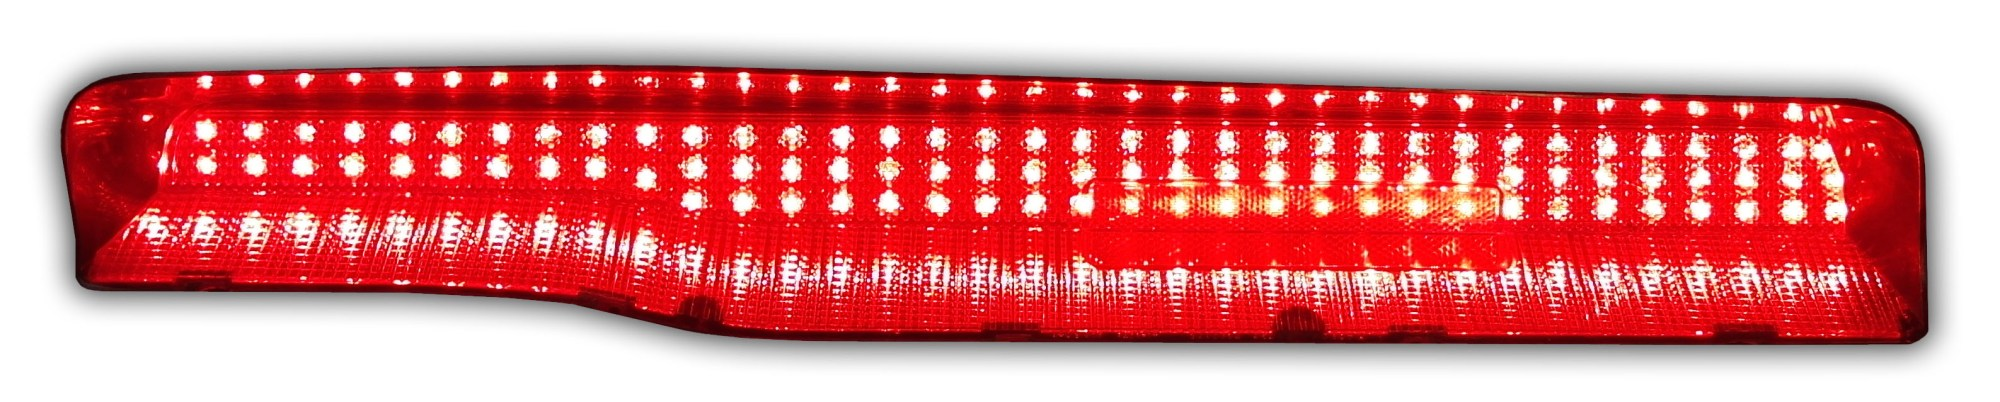 hight resolution of 1969 1970 dodge charger led tail light panels